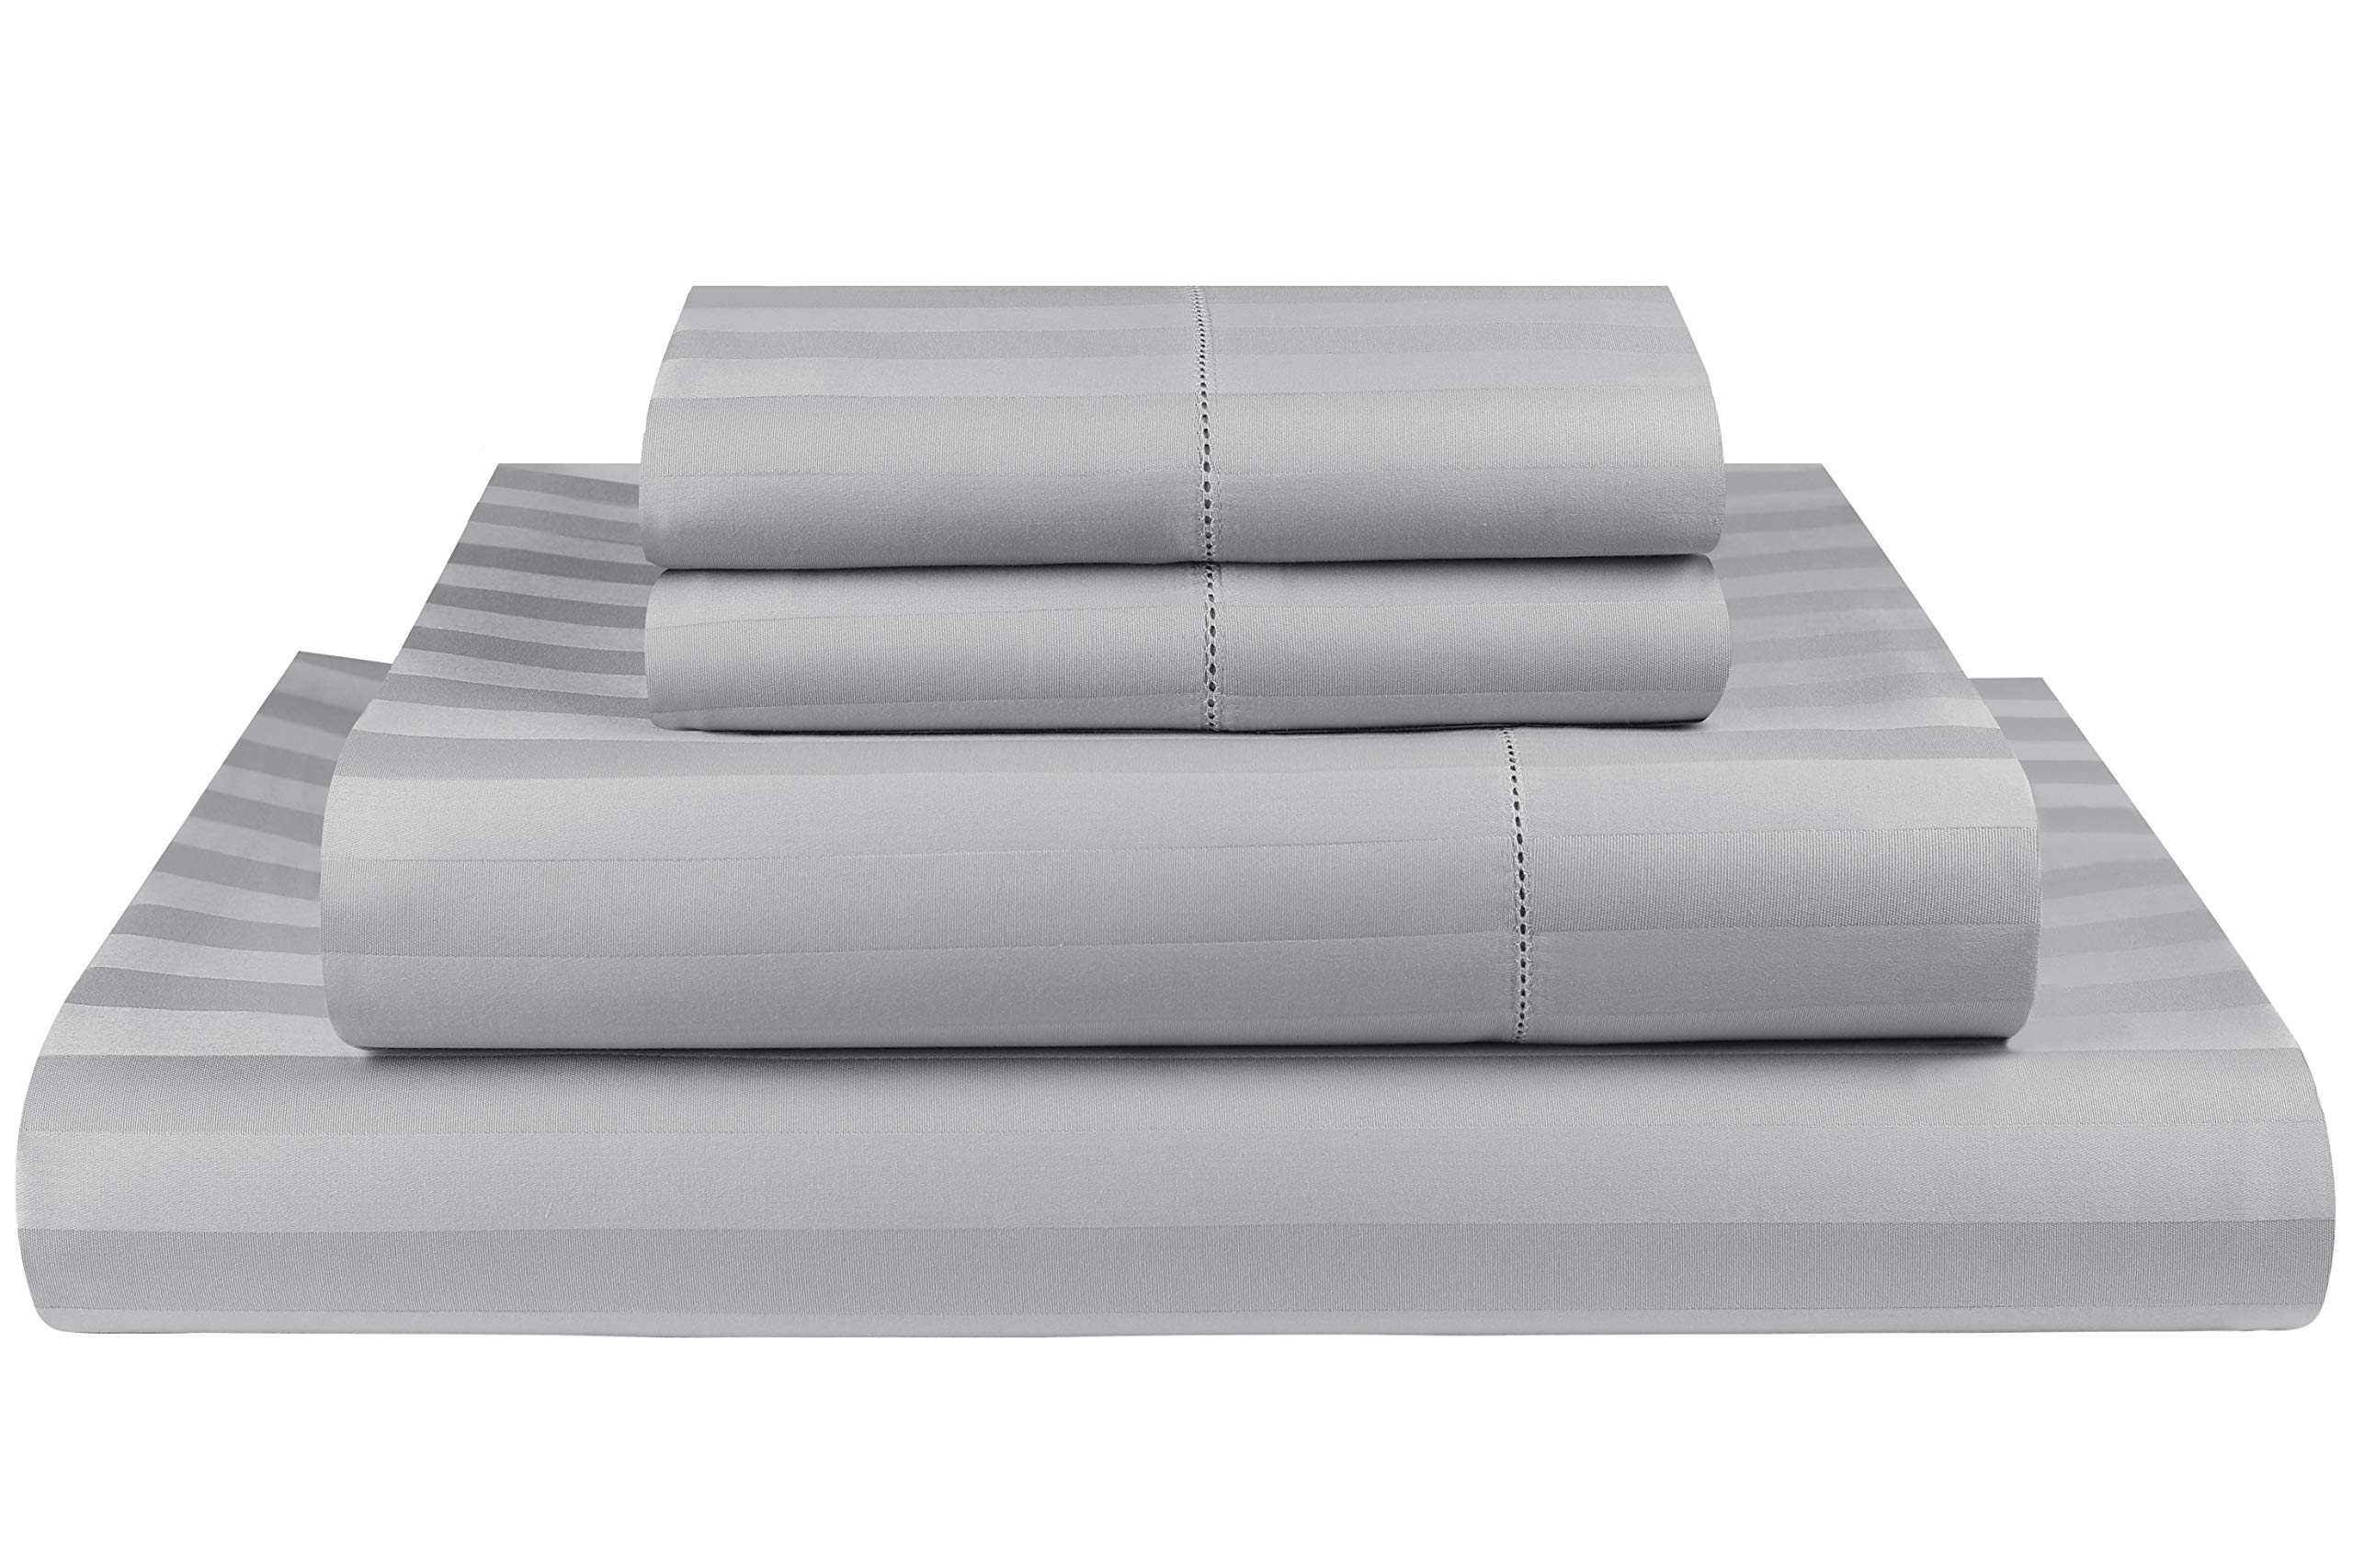 Threadmill Home Linen 500 Thread Count Damask Stripe Cotton Sheets 100% ELS Cotton, Hem Stitch Luxury 4 Piece Bed Sheet Set, Fits Mattresses up to 18 inches deep, Smooth Sateen Weave, Queen, Silver